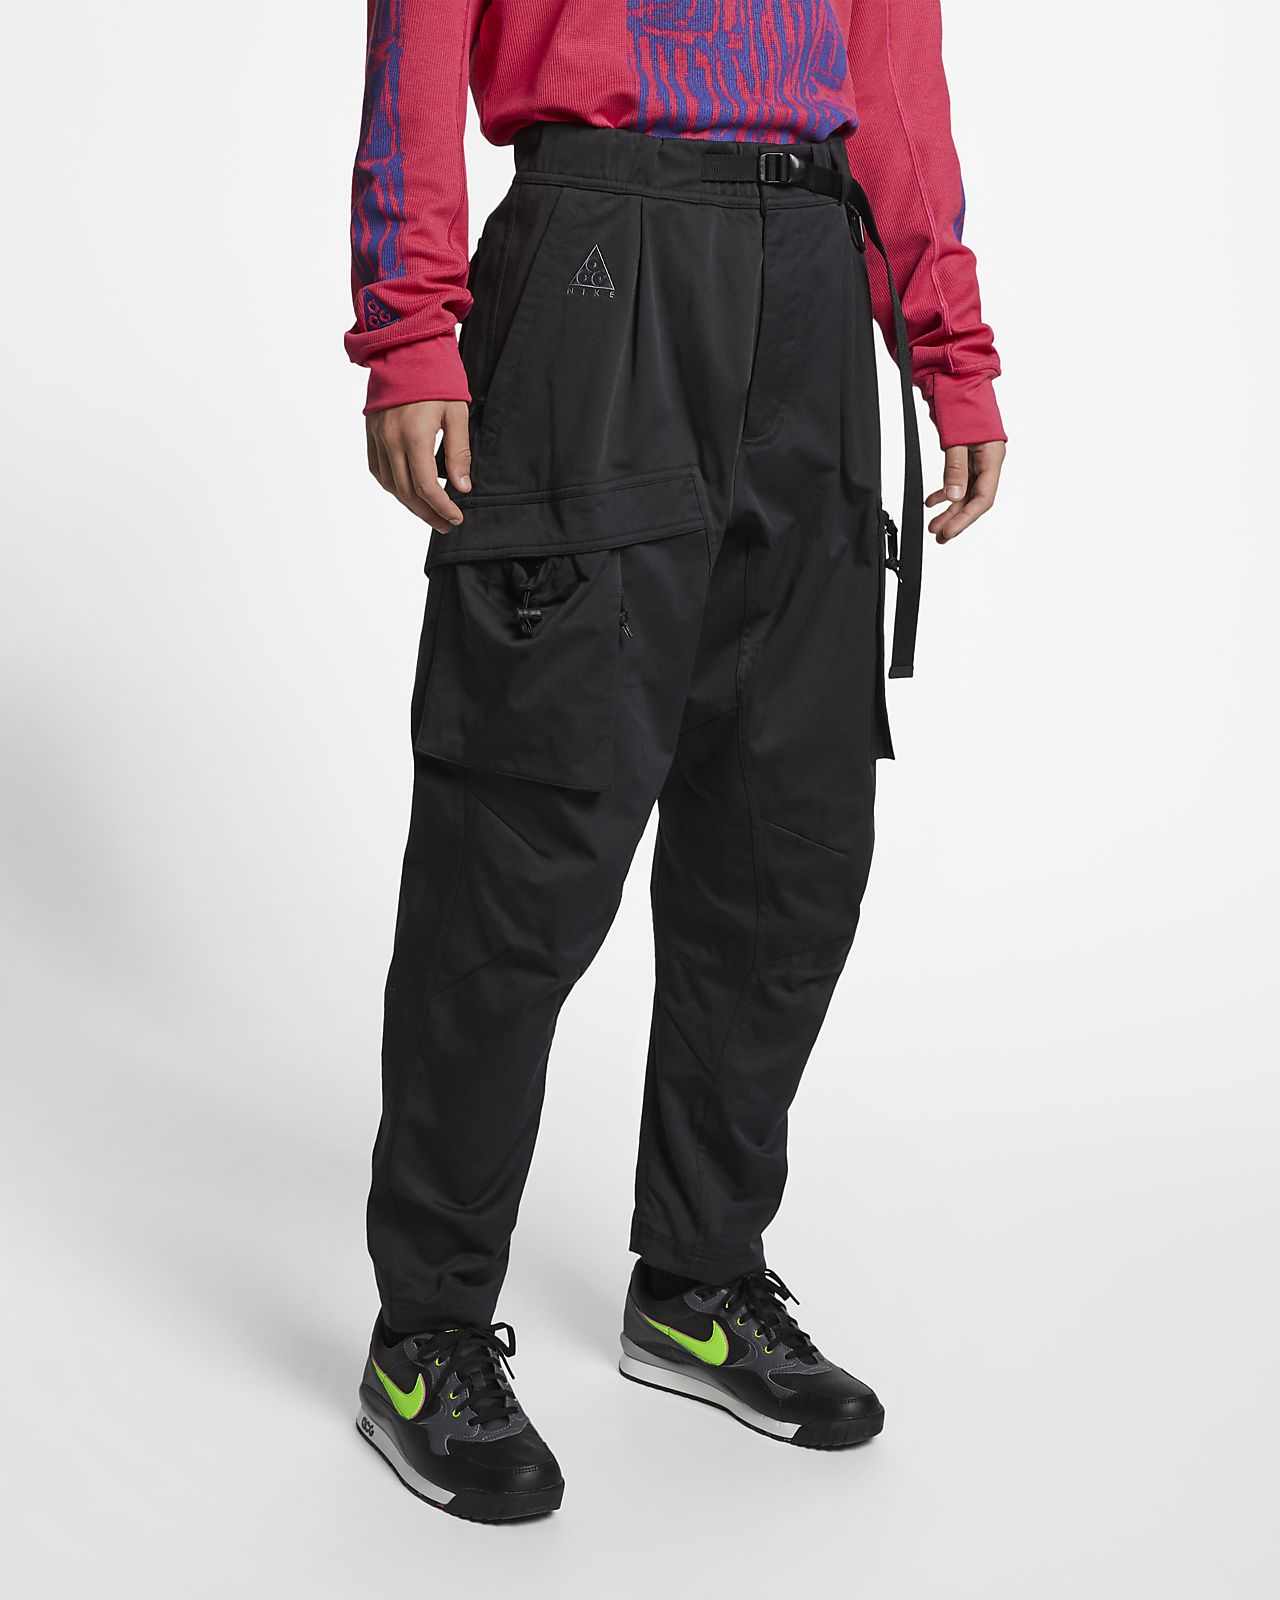 e85dc581ecb36 Low Resolution Nike ACG Men's Pants Nike ACG Men's Pants